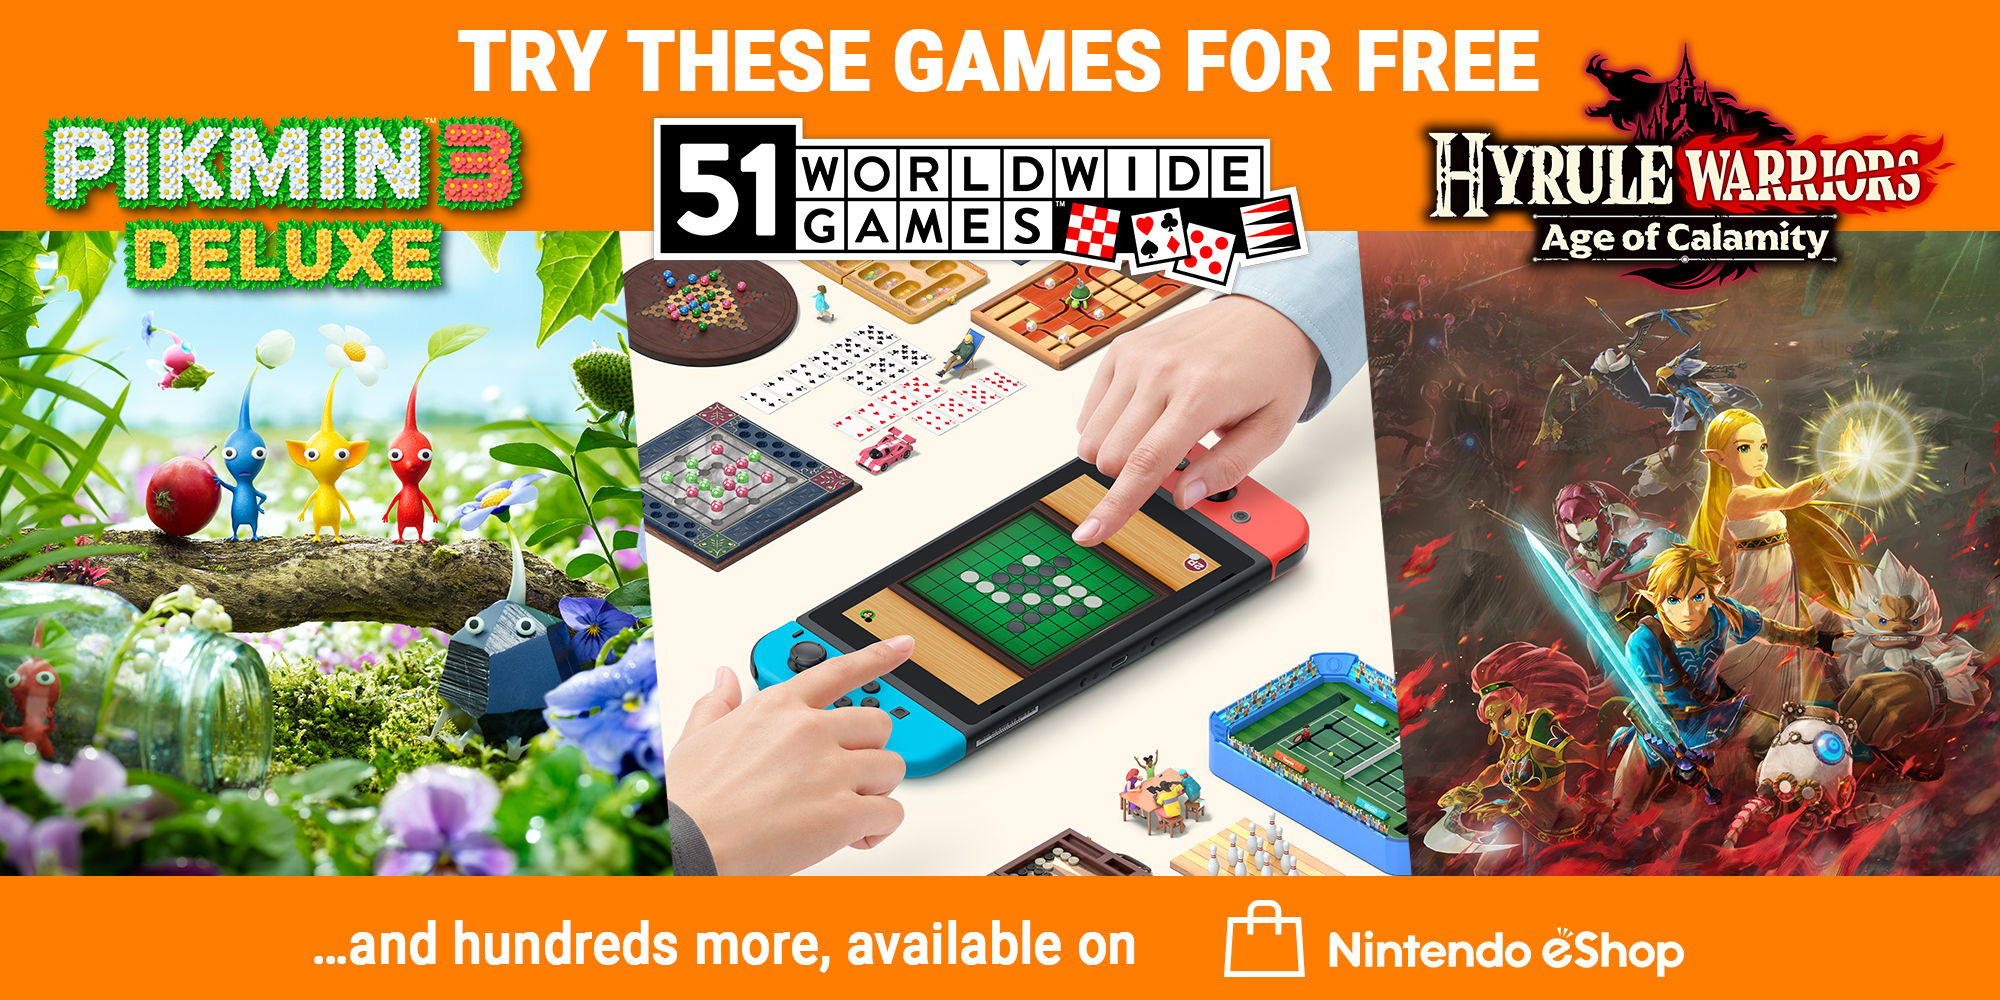 Try three great games for free on Nintendo Switch!